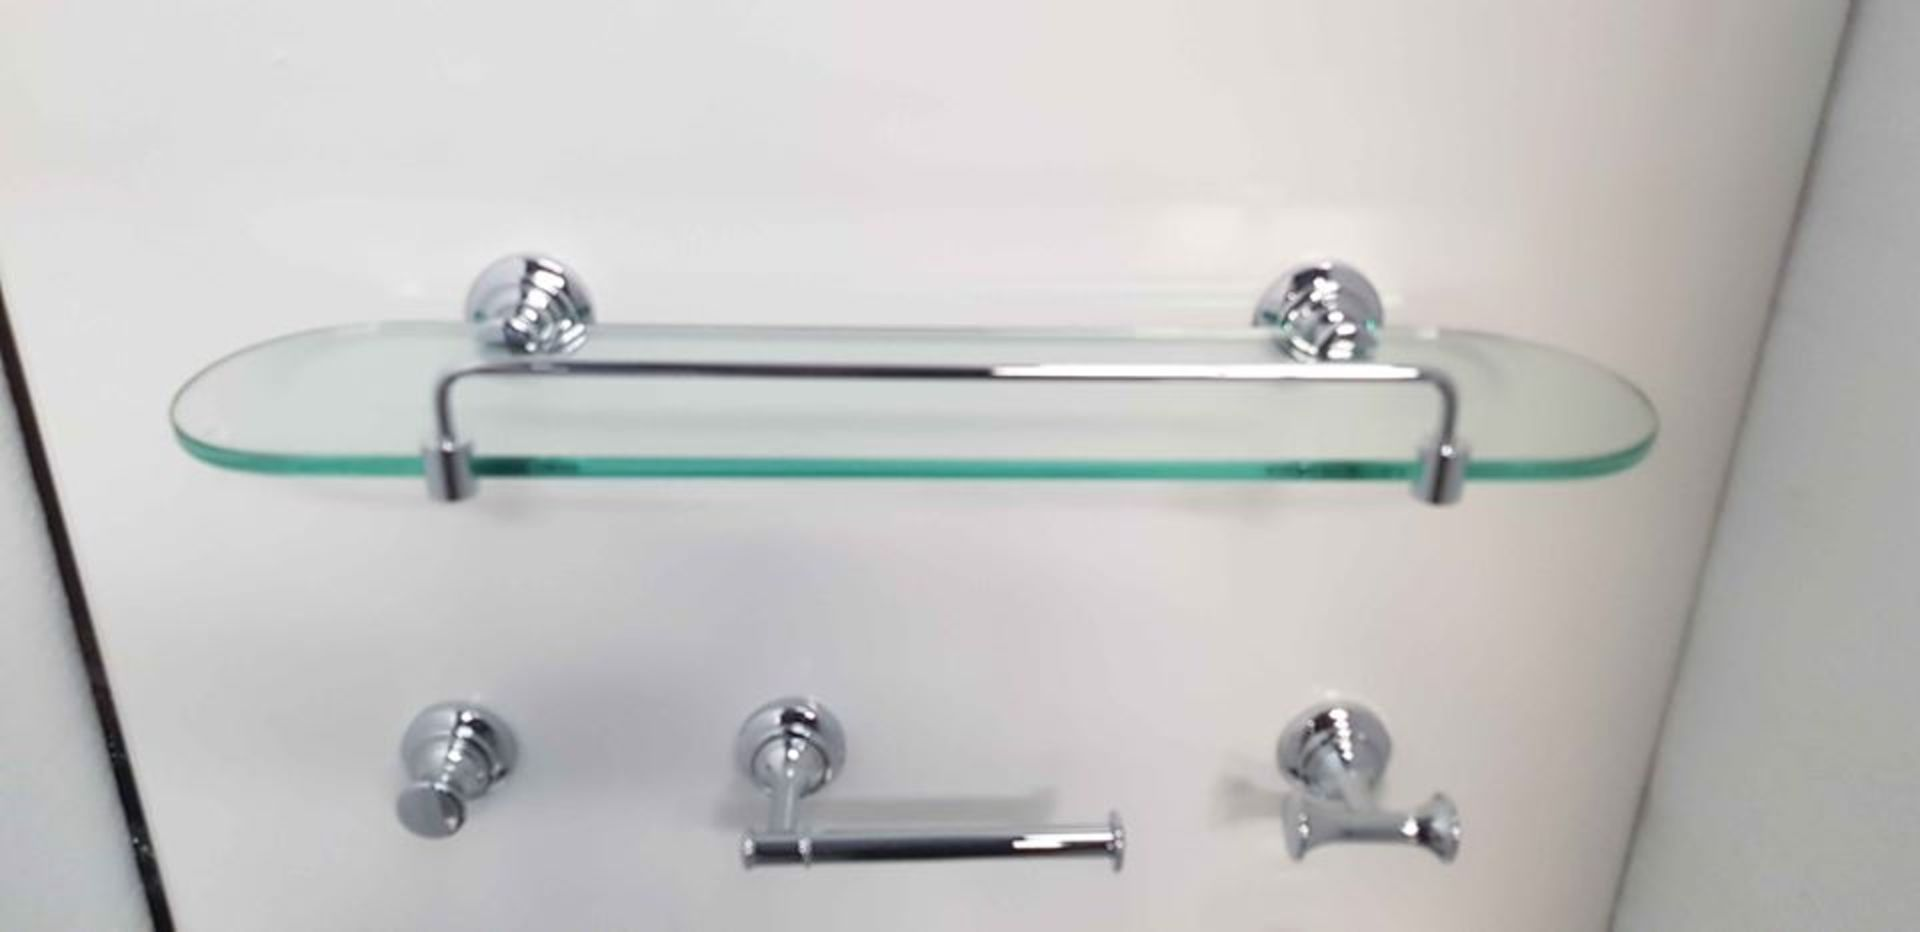 Lot 12 - Transition 12 Piece, very high quality, bathroom accessory set in polished chrome & ceramic finish.